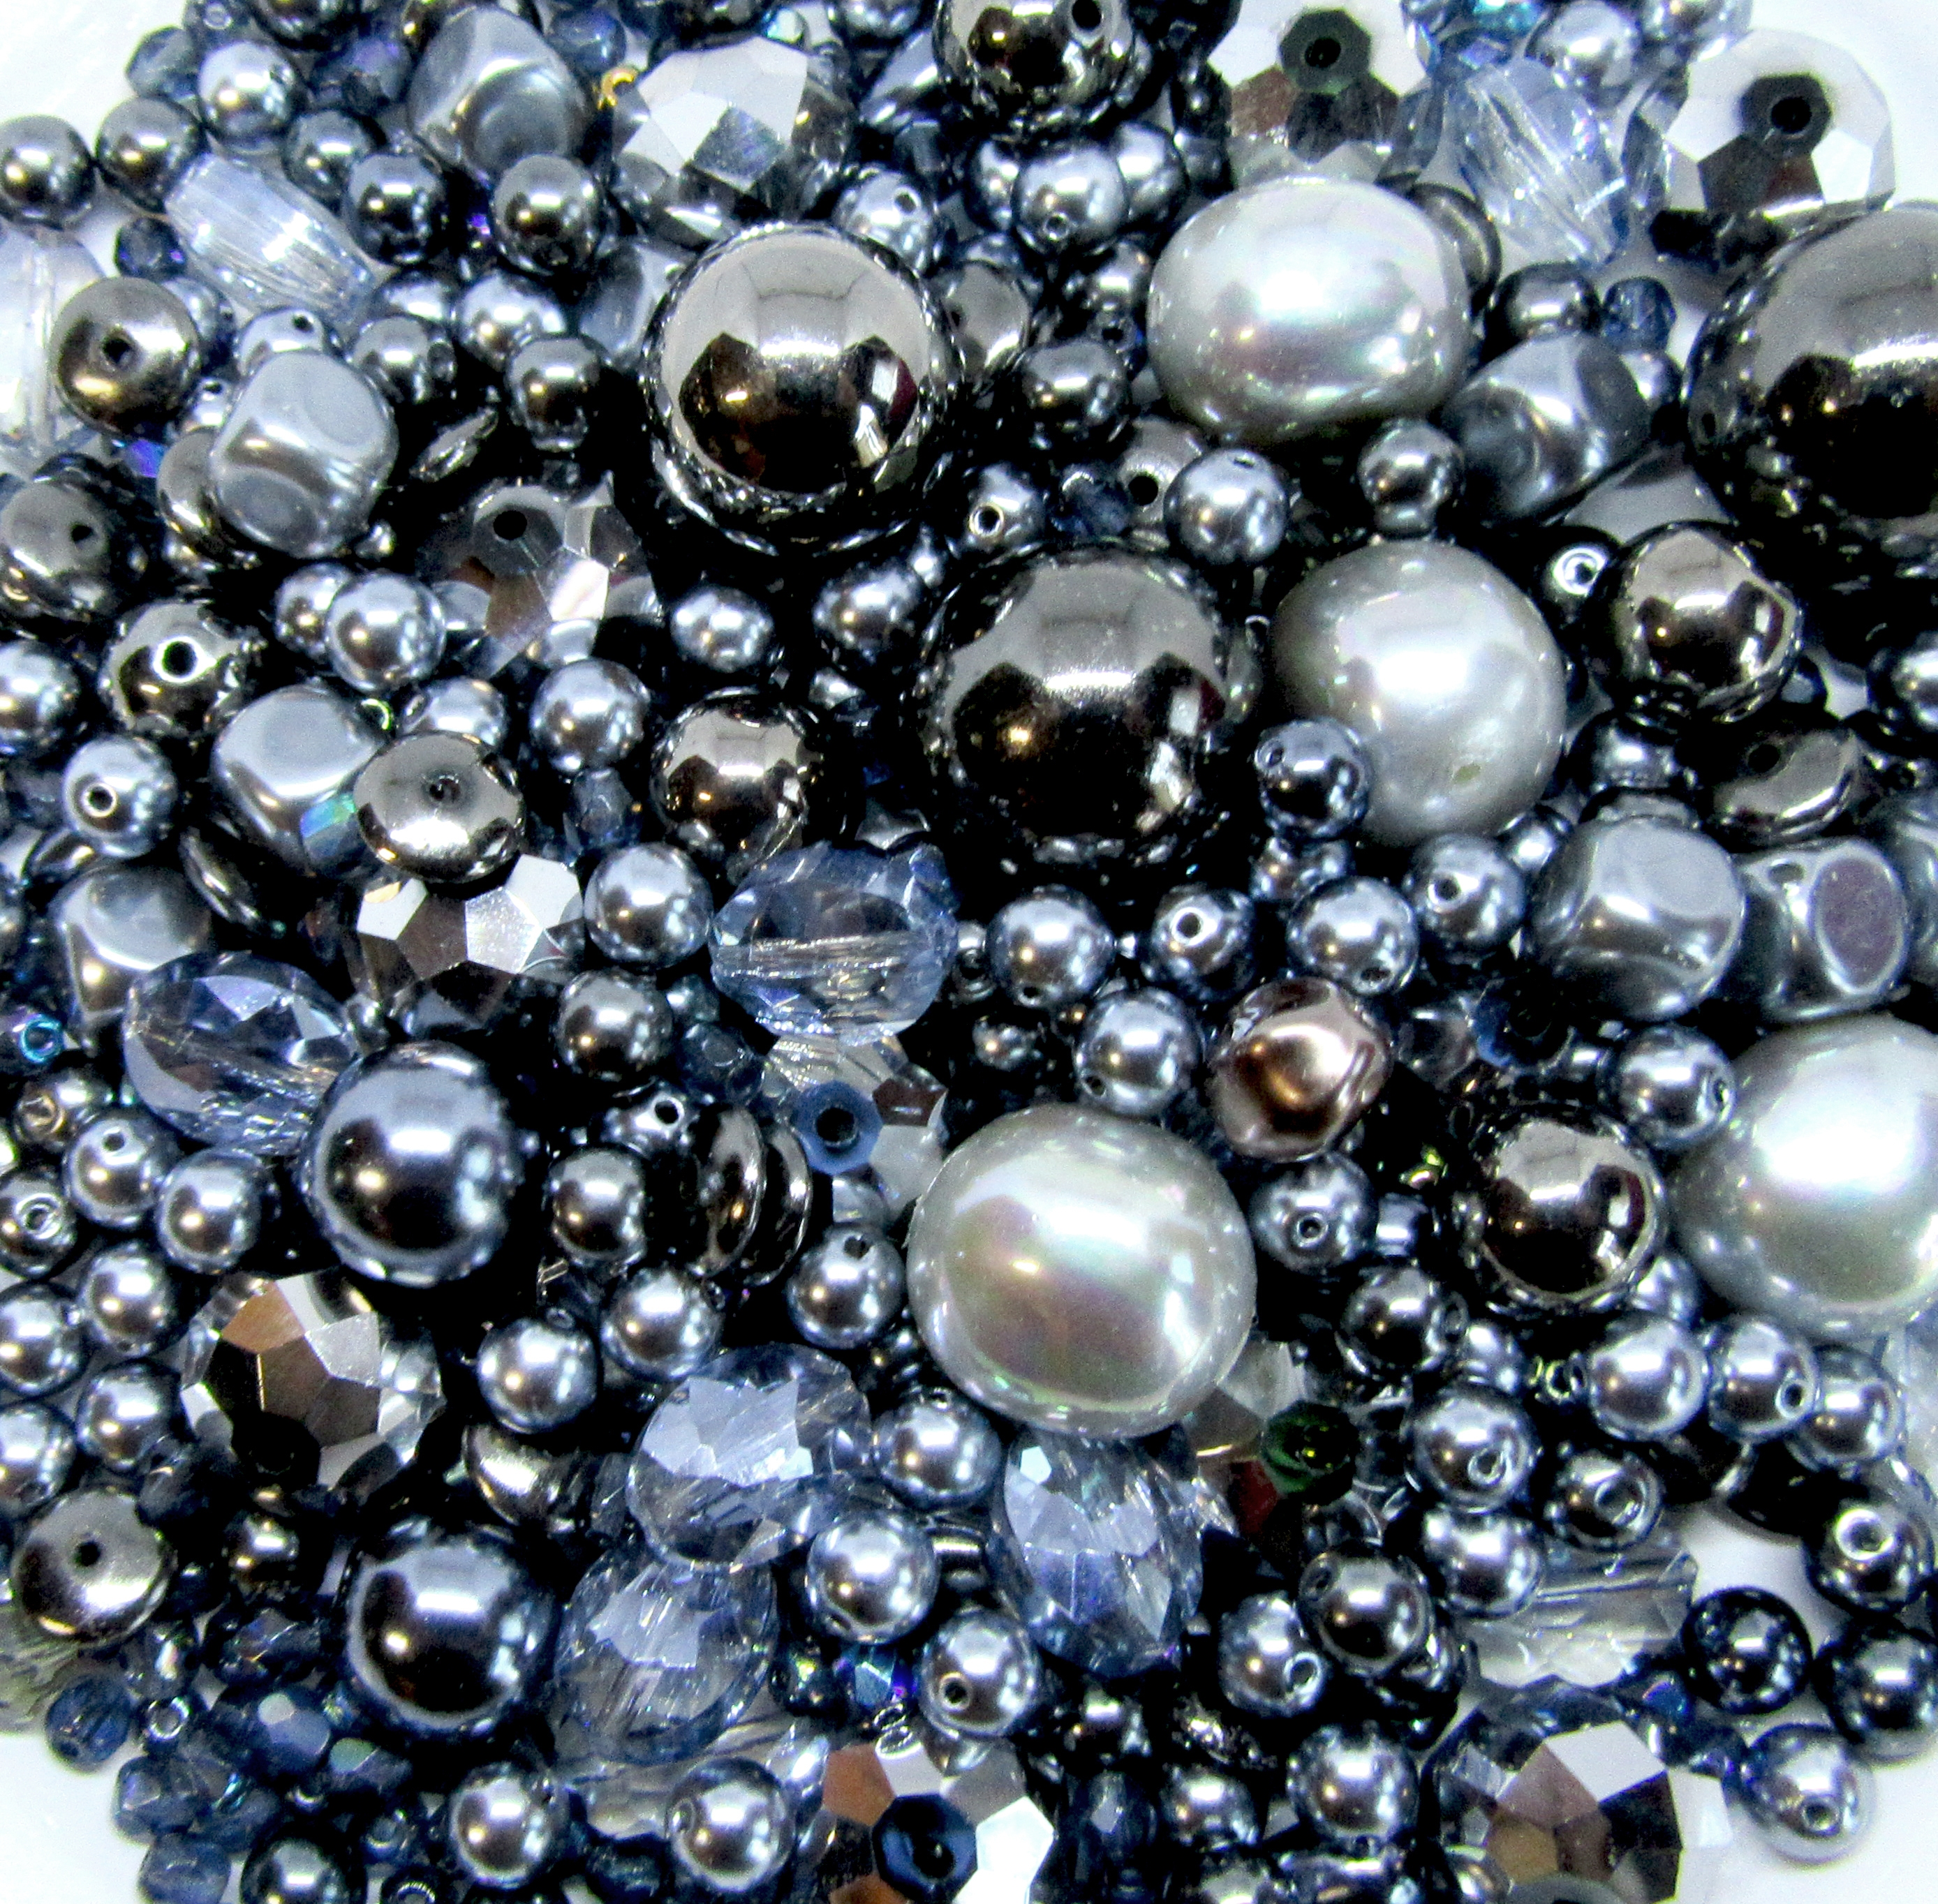 blue steel, steel blue beads, vintage beads, glass beads, vintage glass beads, vintage plastic beads, assorted beads, bead mix, hematite black, designer beads, vintage plastic beads, modacrylic beads, grey pearls, silver glass beads, B'sue Boutiques